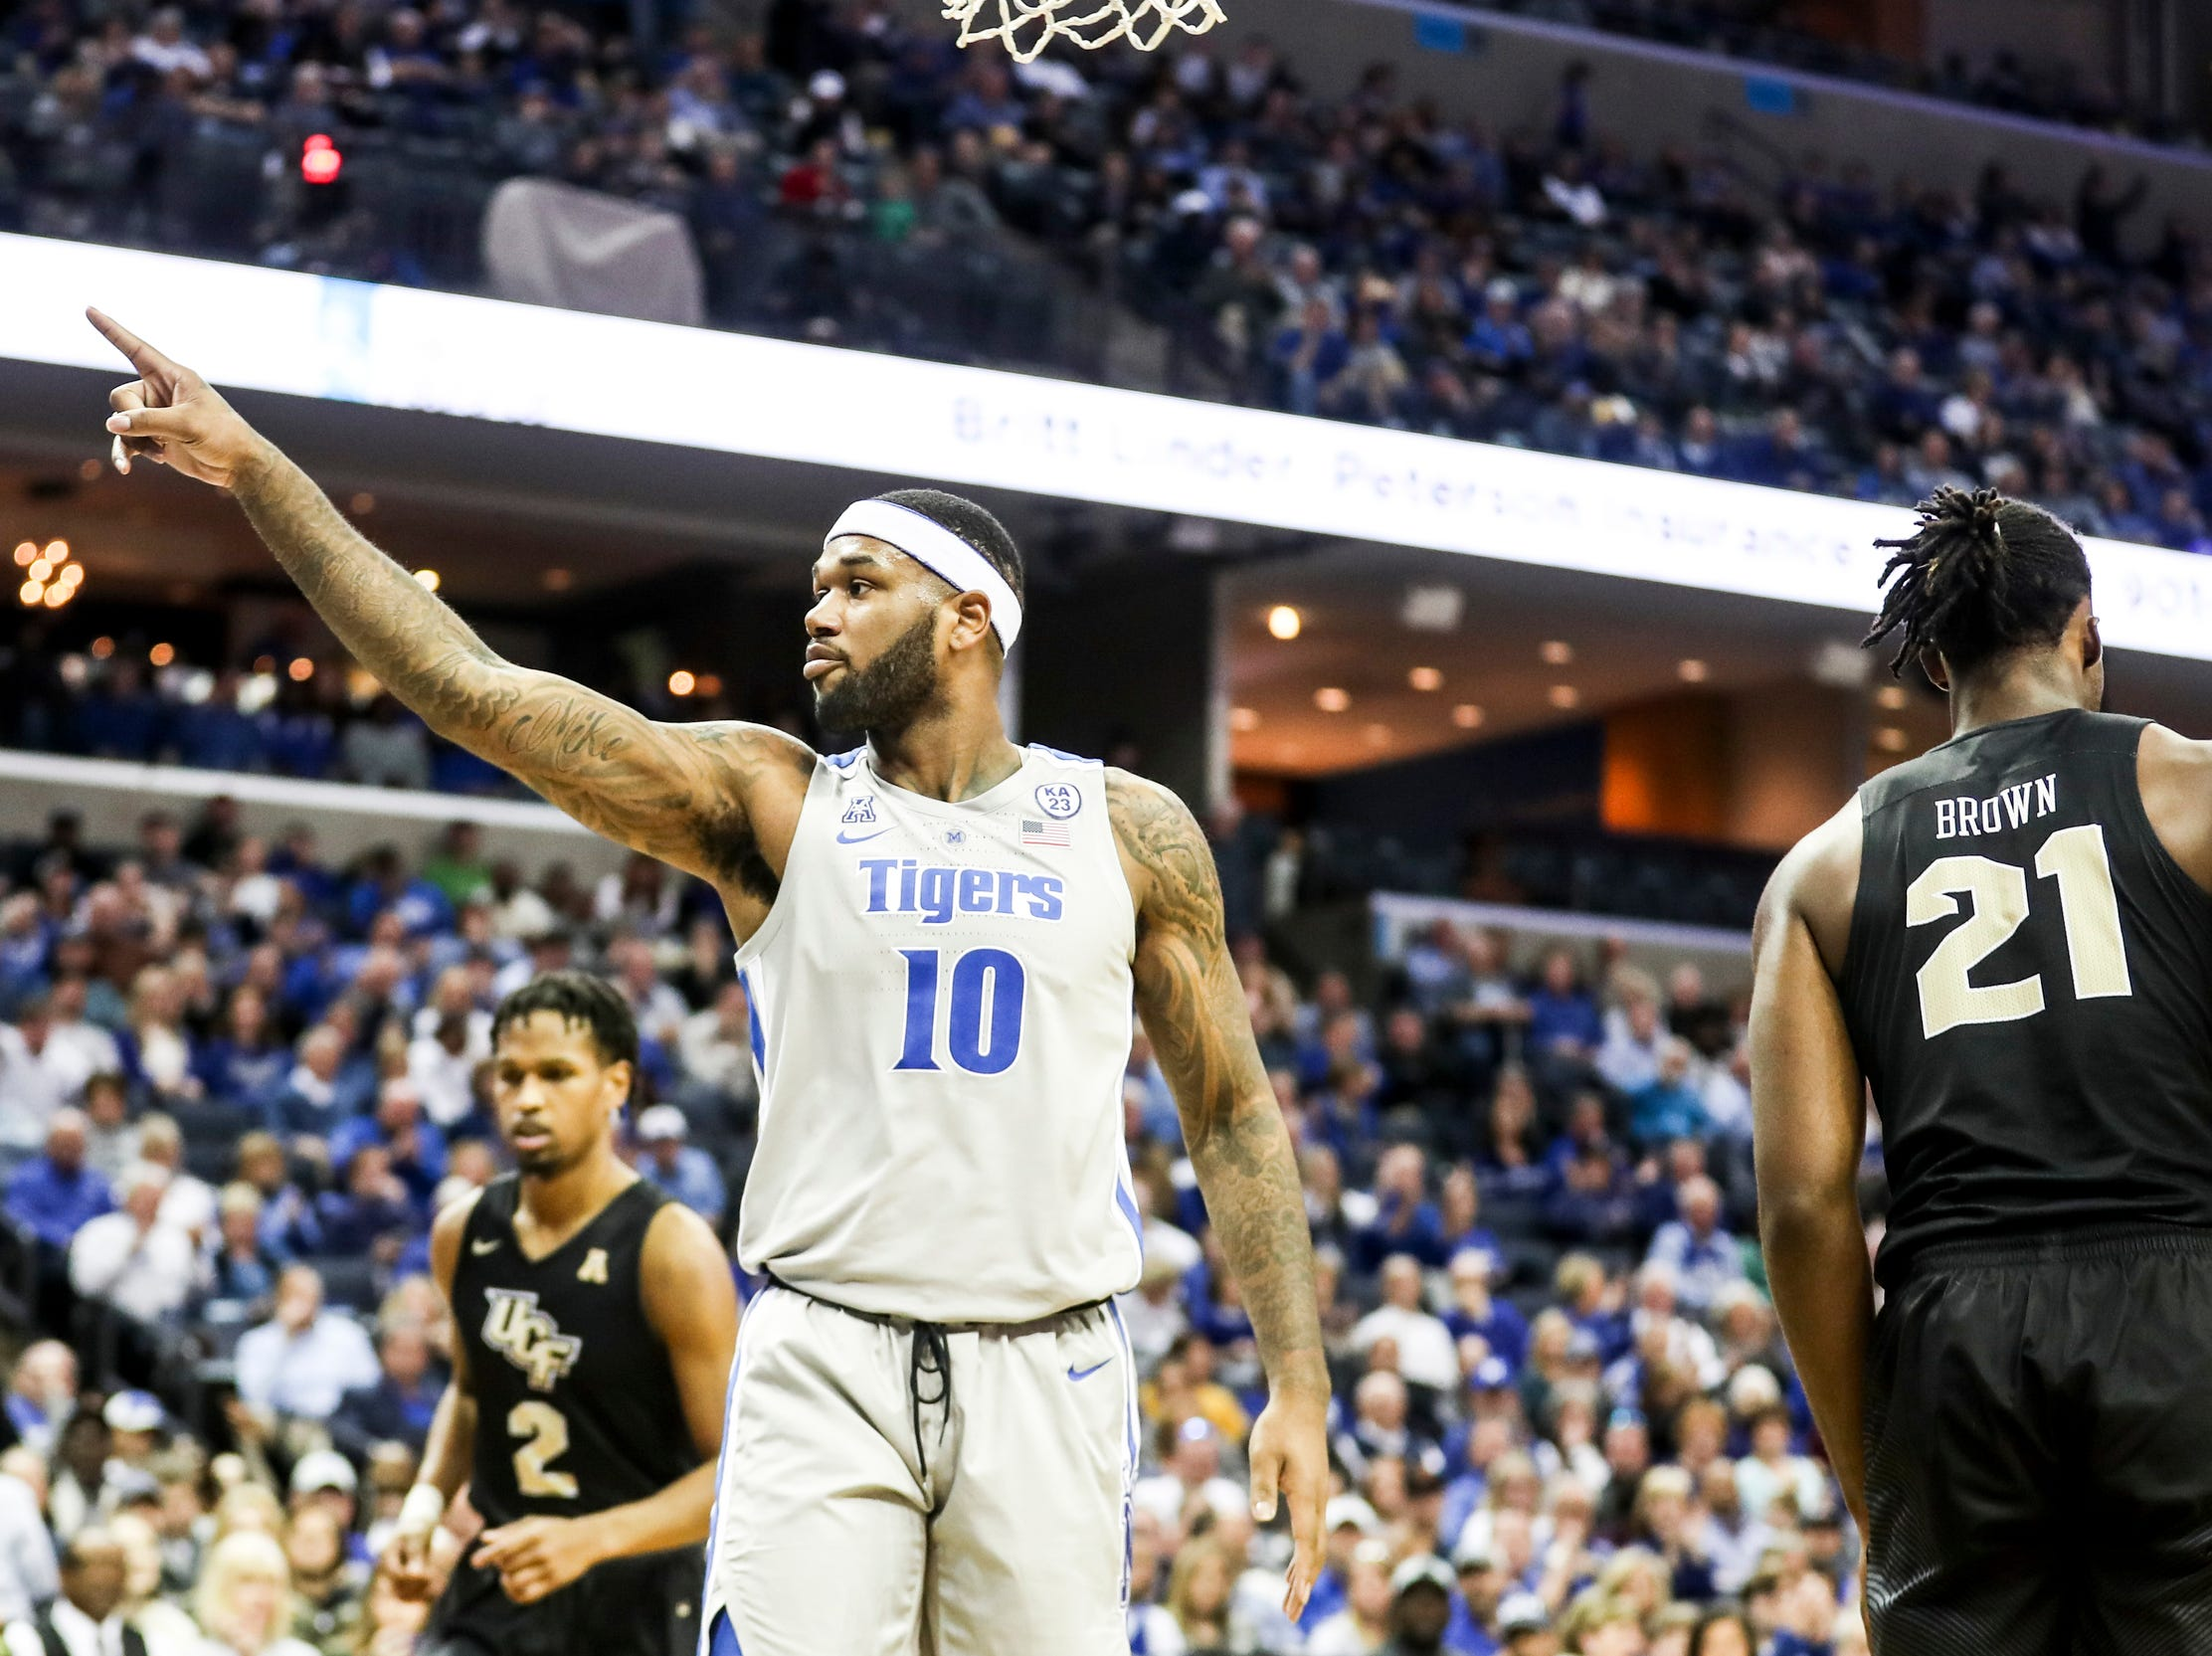 January 27 2019 - Mike Parks Jr. points out to fans during Sunday afternoon's game against UCF at the FedExForum in Memphis.